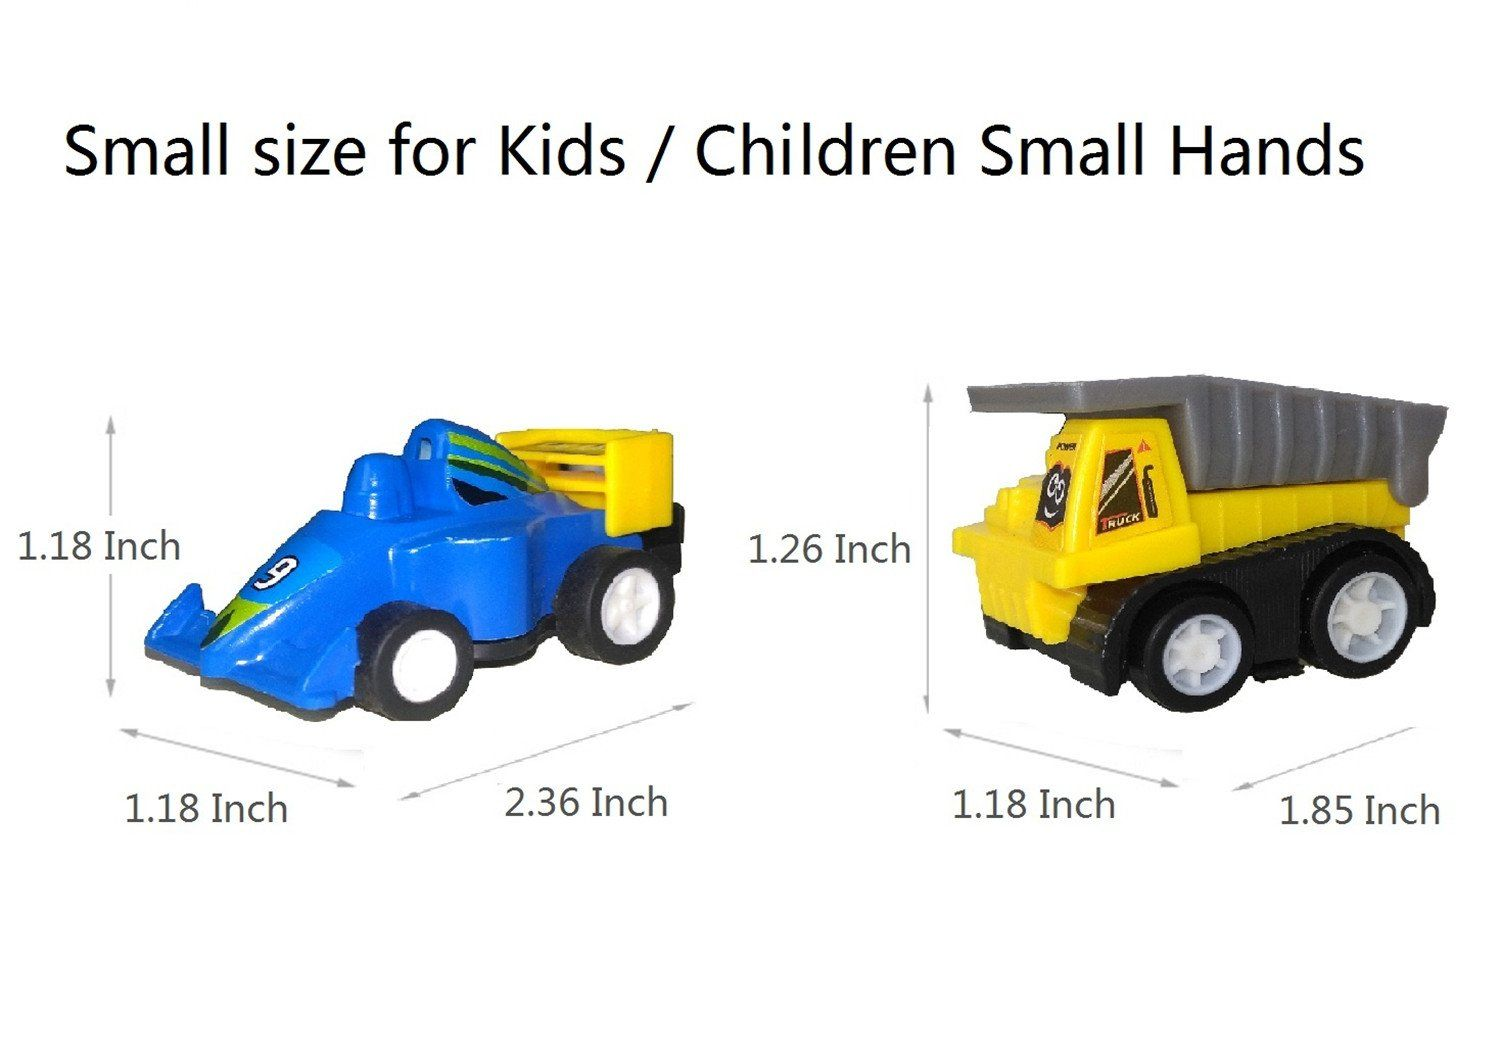 Winone Pull Back Carsmini Toy Cars 3 4 5 Year Old Boy Toys Car 12